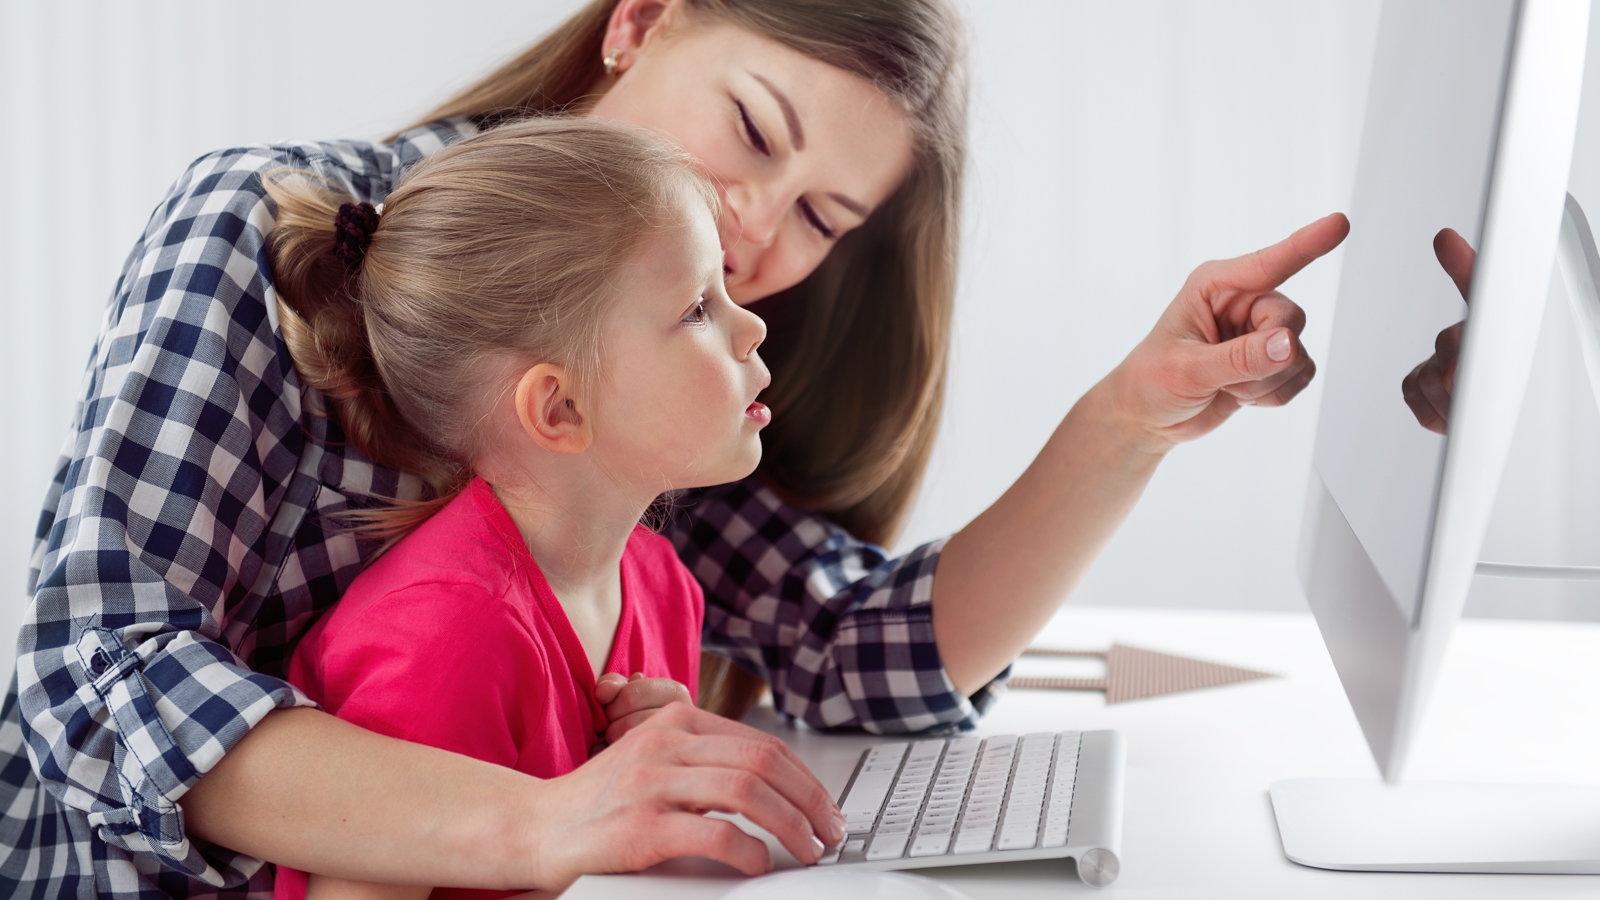 mother and daughter using computer together